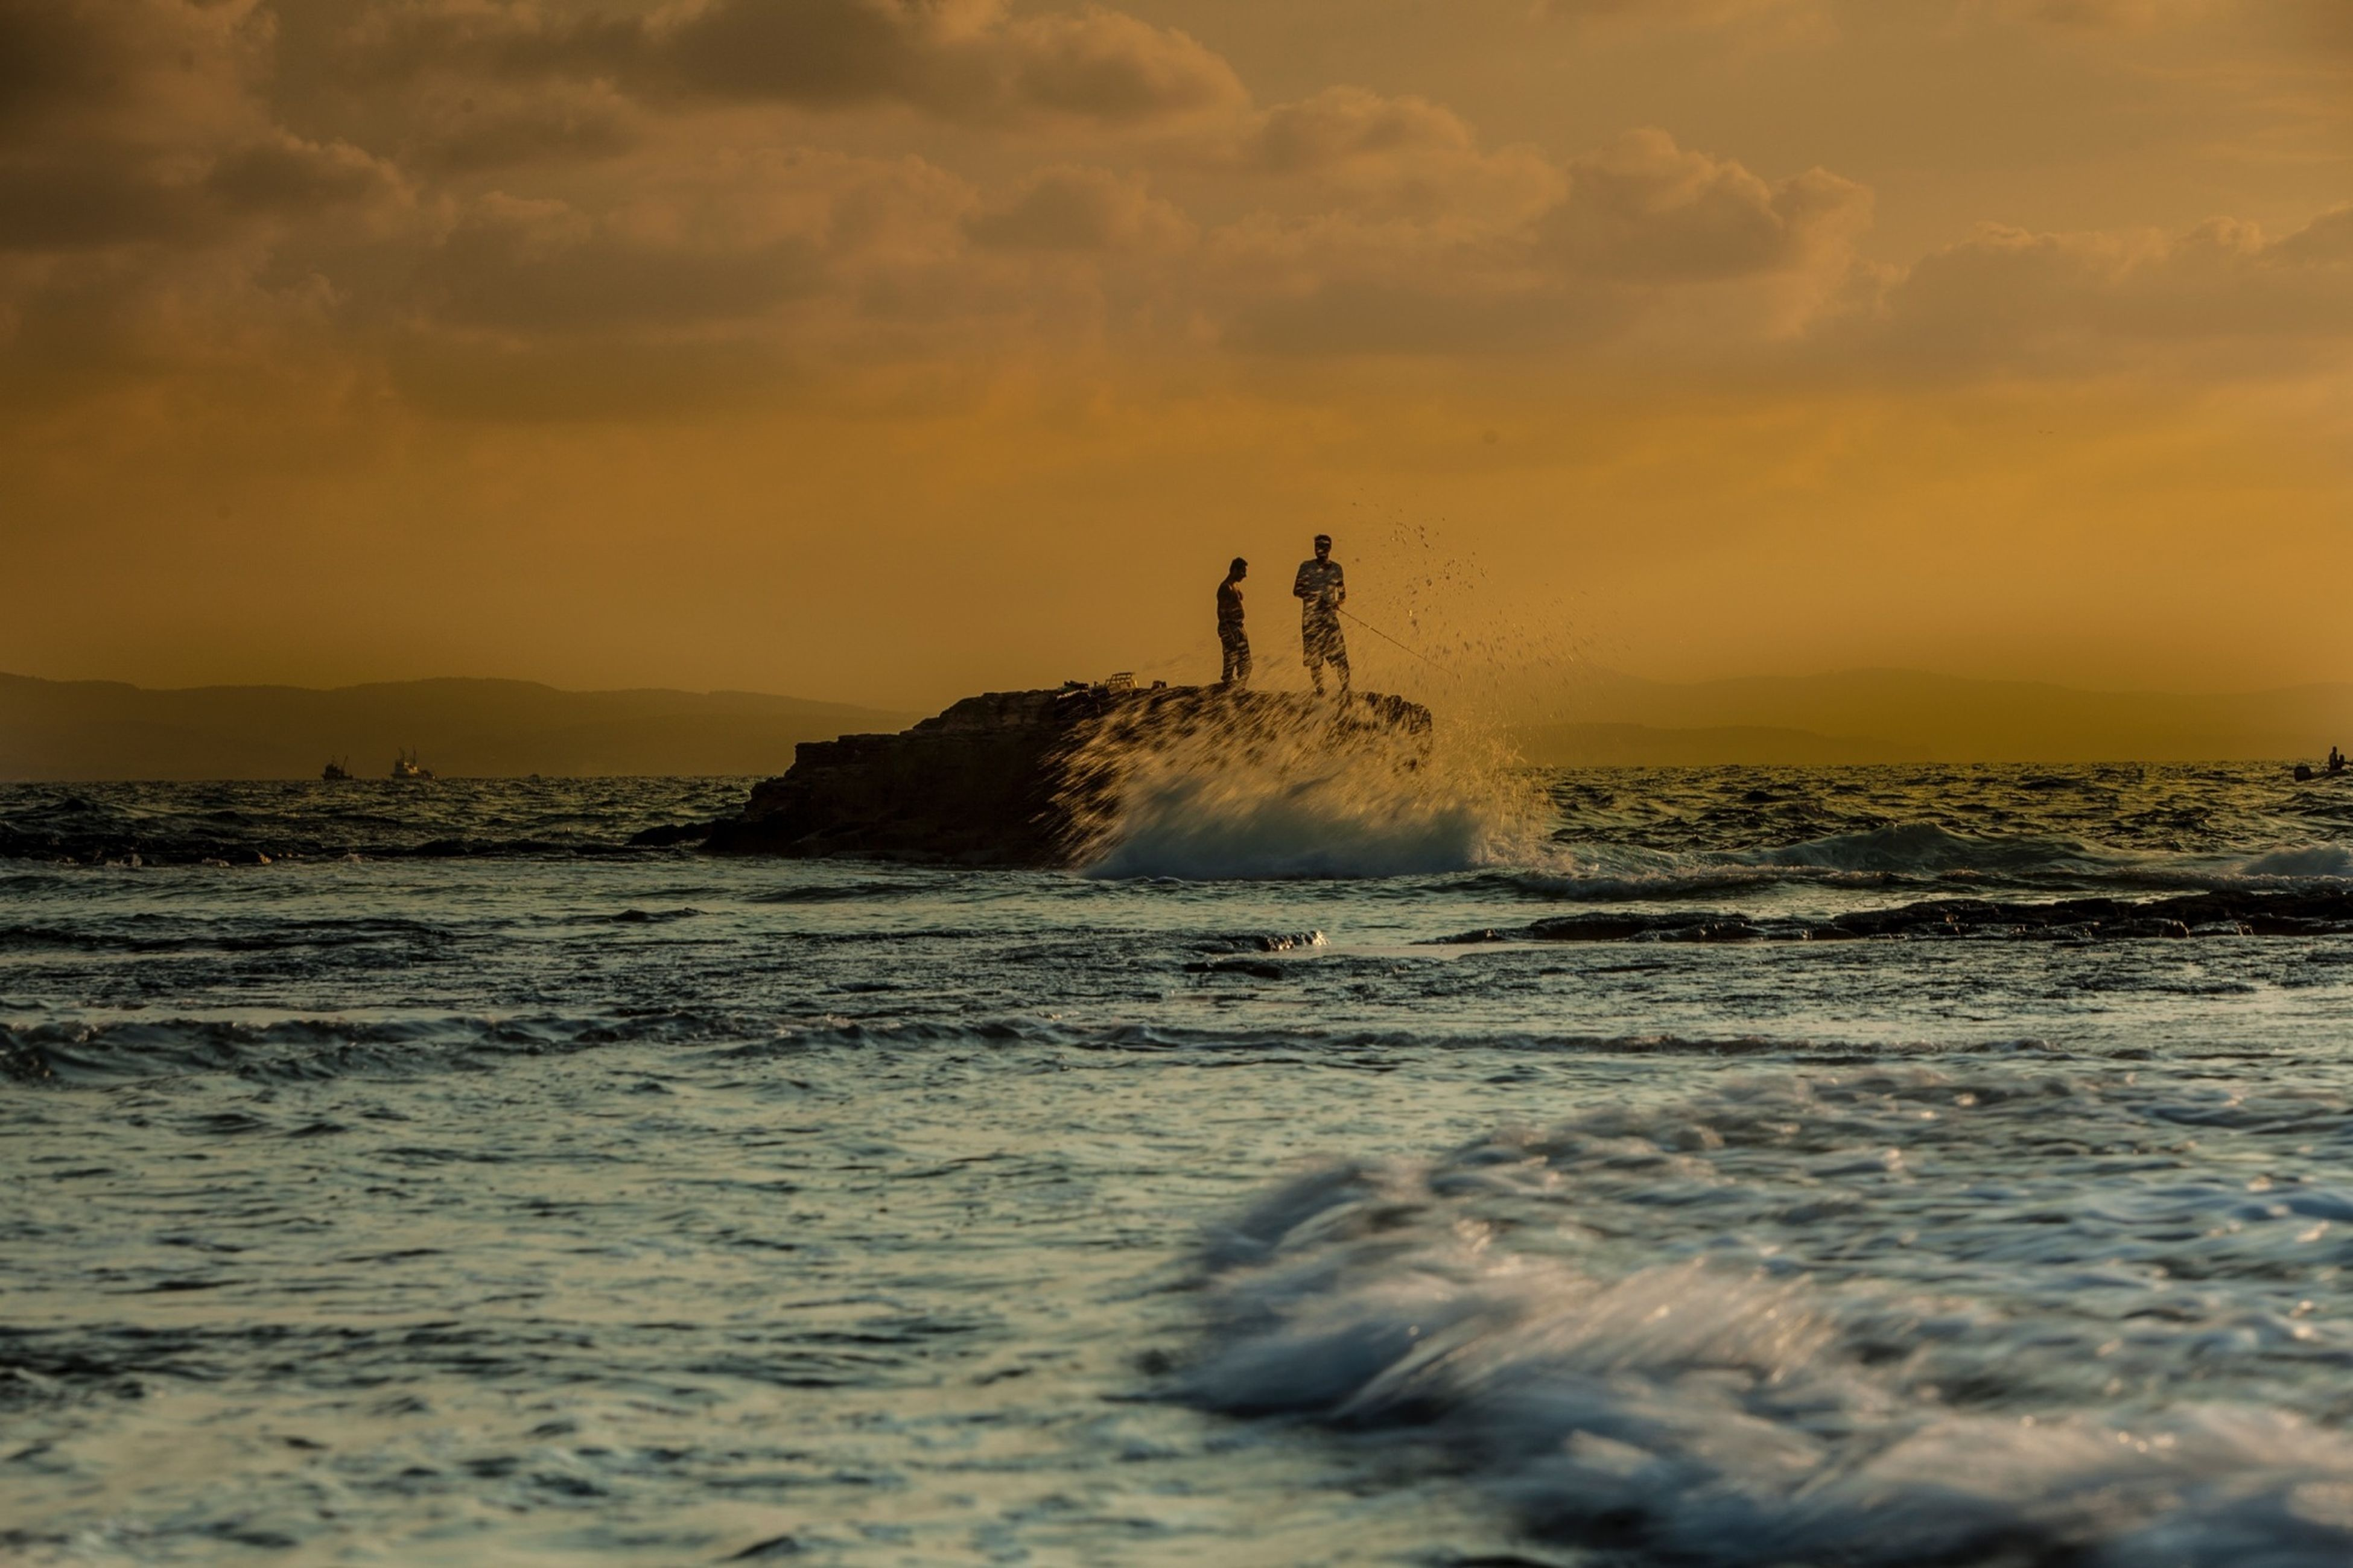 sea, water, sunset, wave, horizon over water, sky, scenics, beach, beauty in nature, silhouette, leisure activity, lifestyles, waterfront, tranquil scene, nature, men, shore, surf